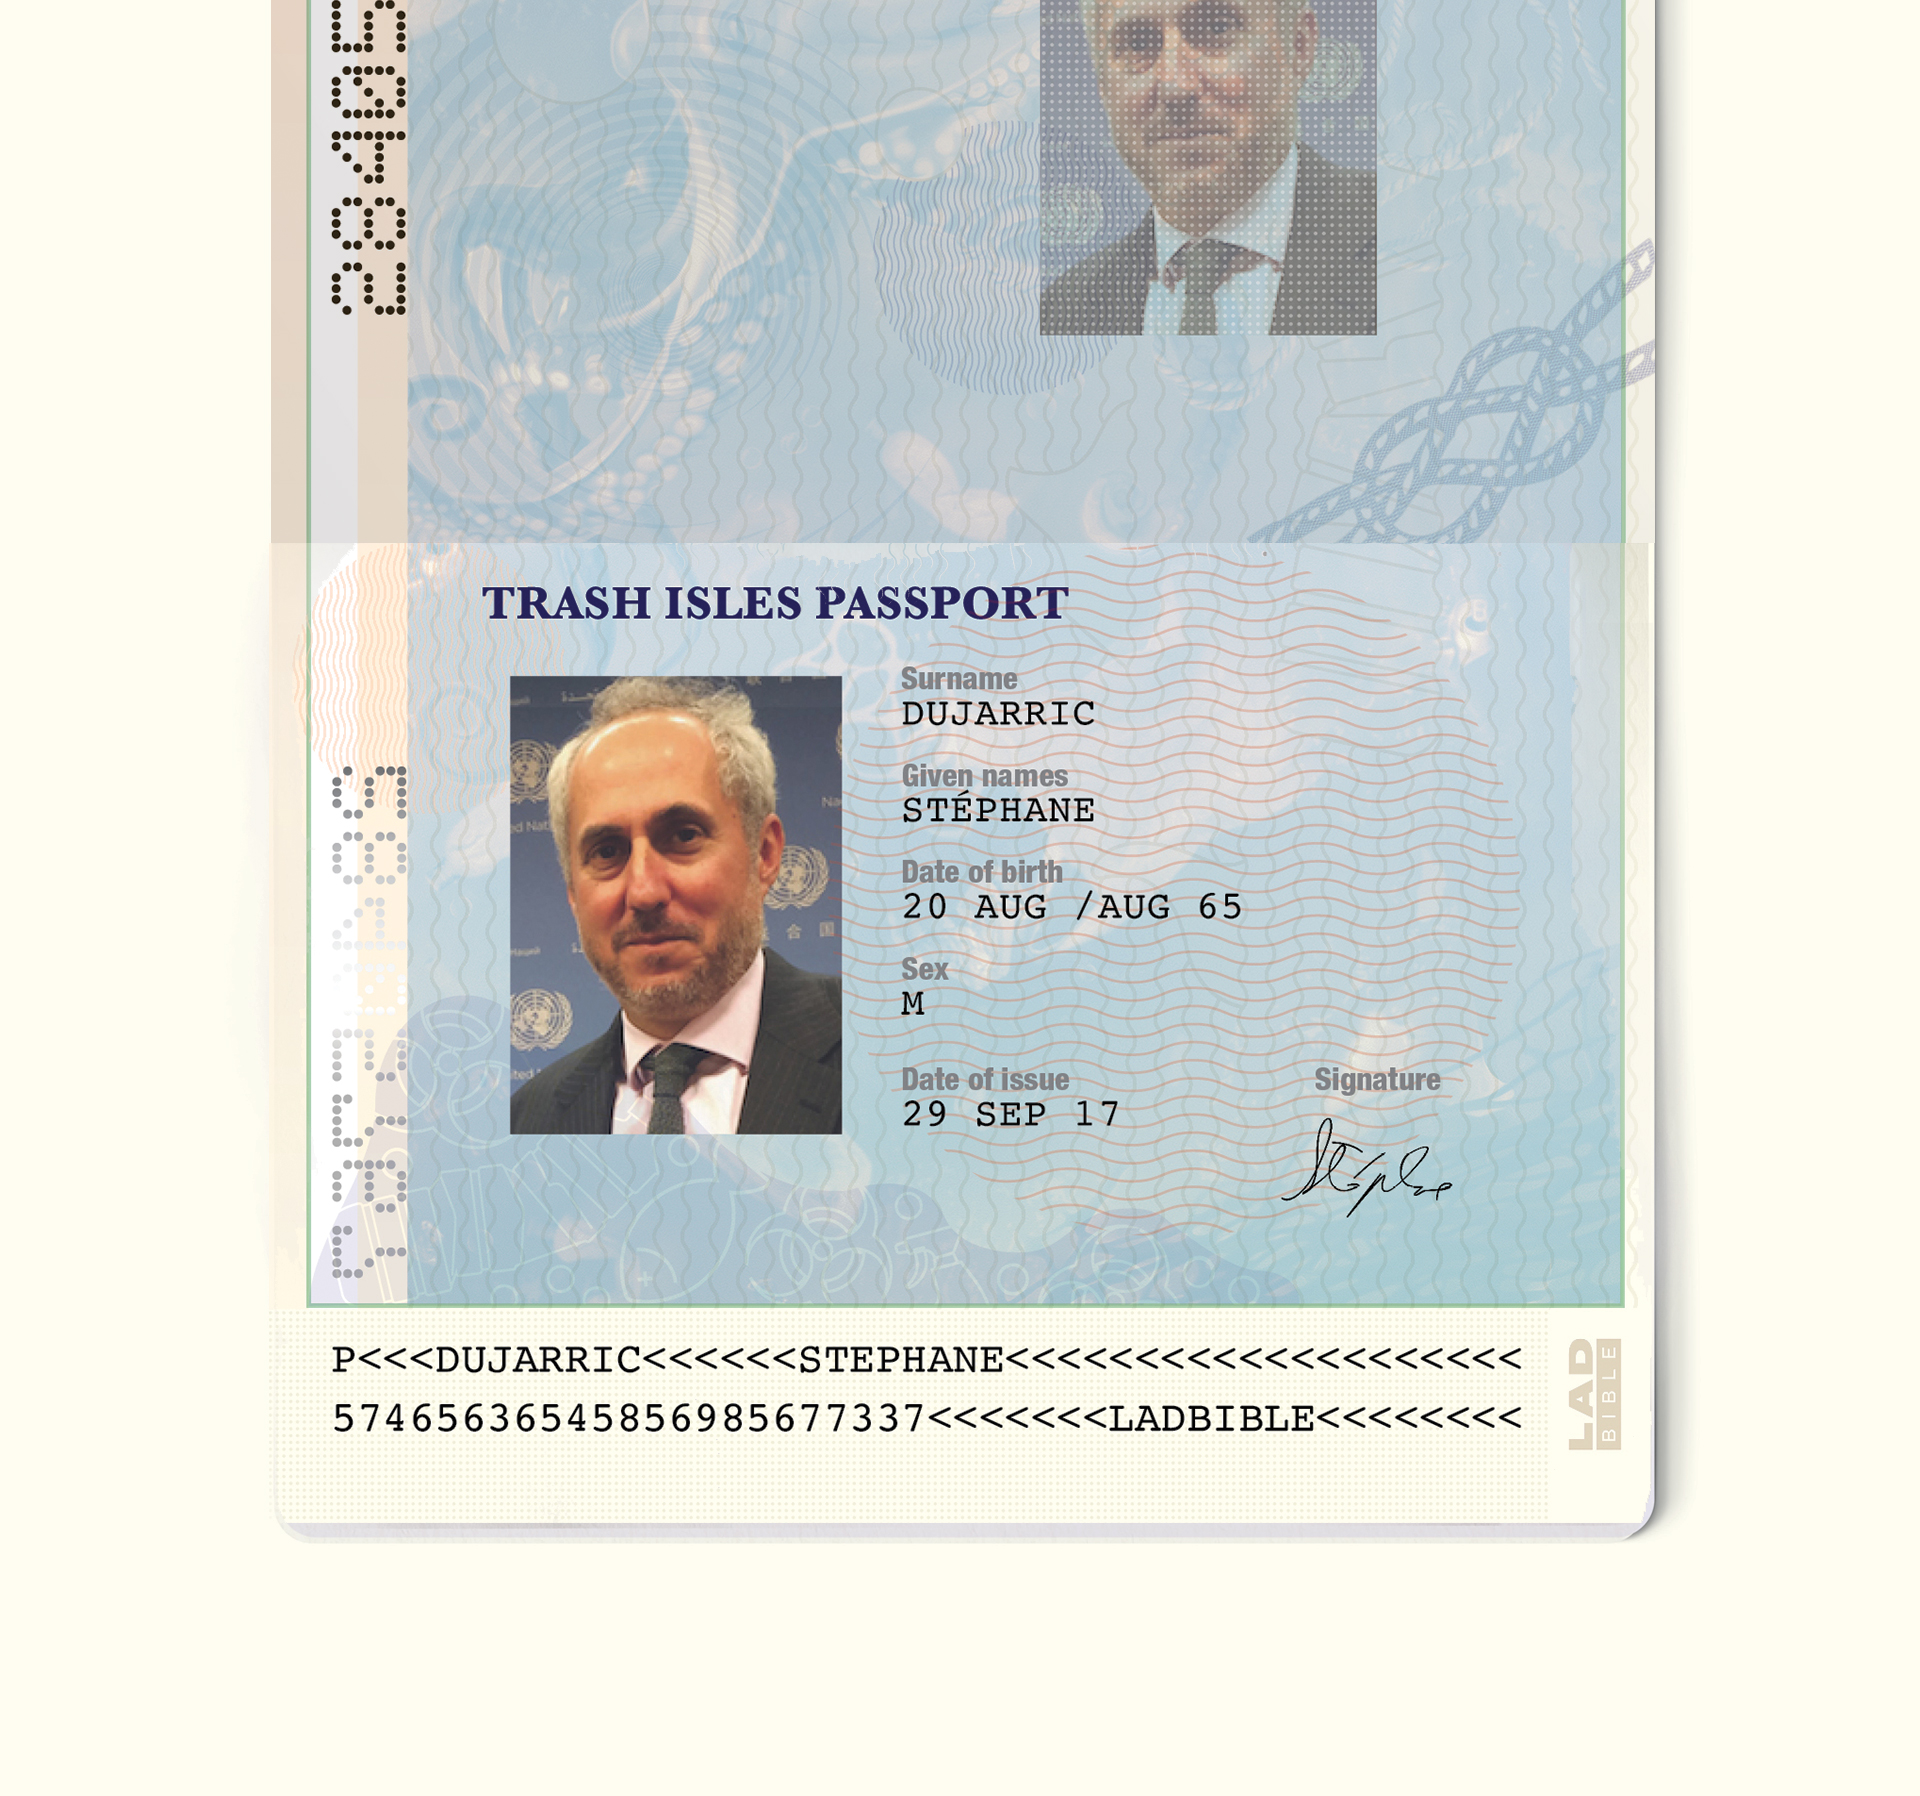 Trash isles passport